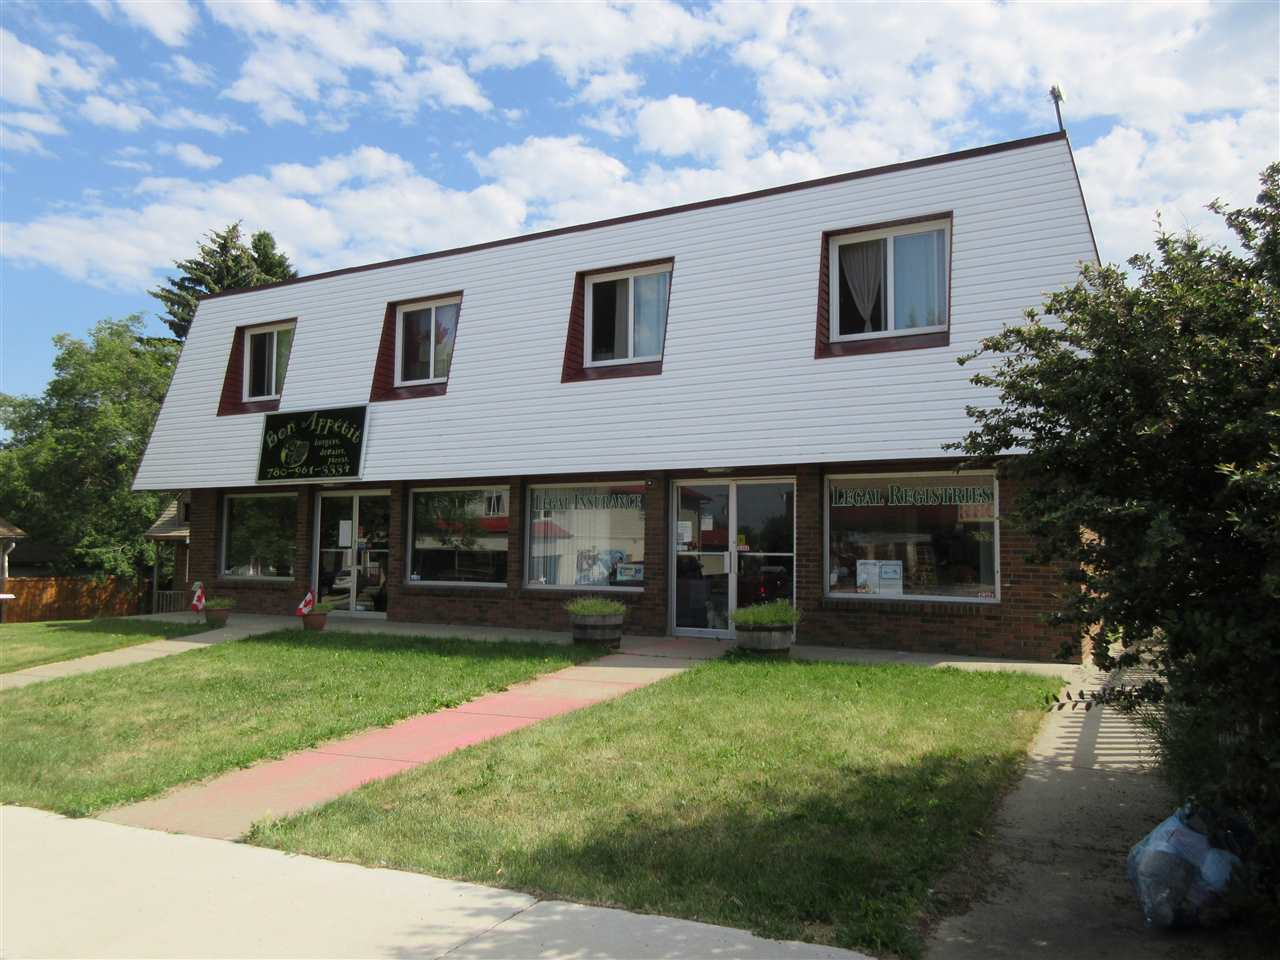 Main Photo: 4727 50 Avenue: Legal Multi-Family Commercial for sale : MLS®# E4120115